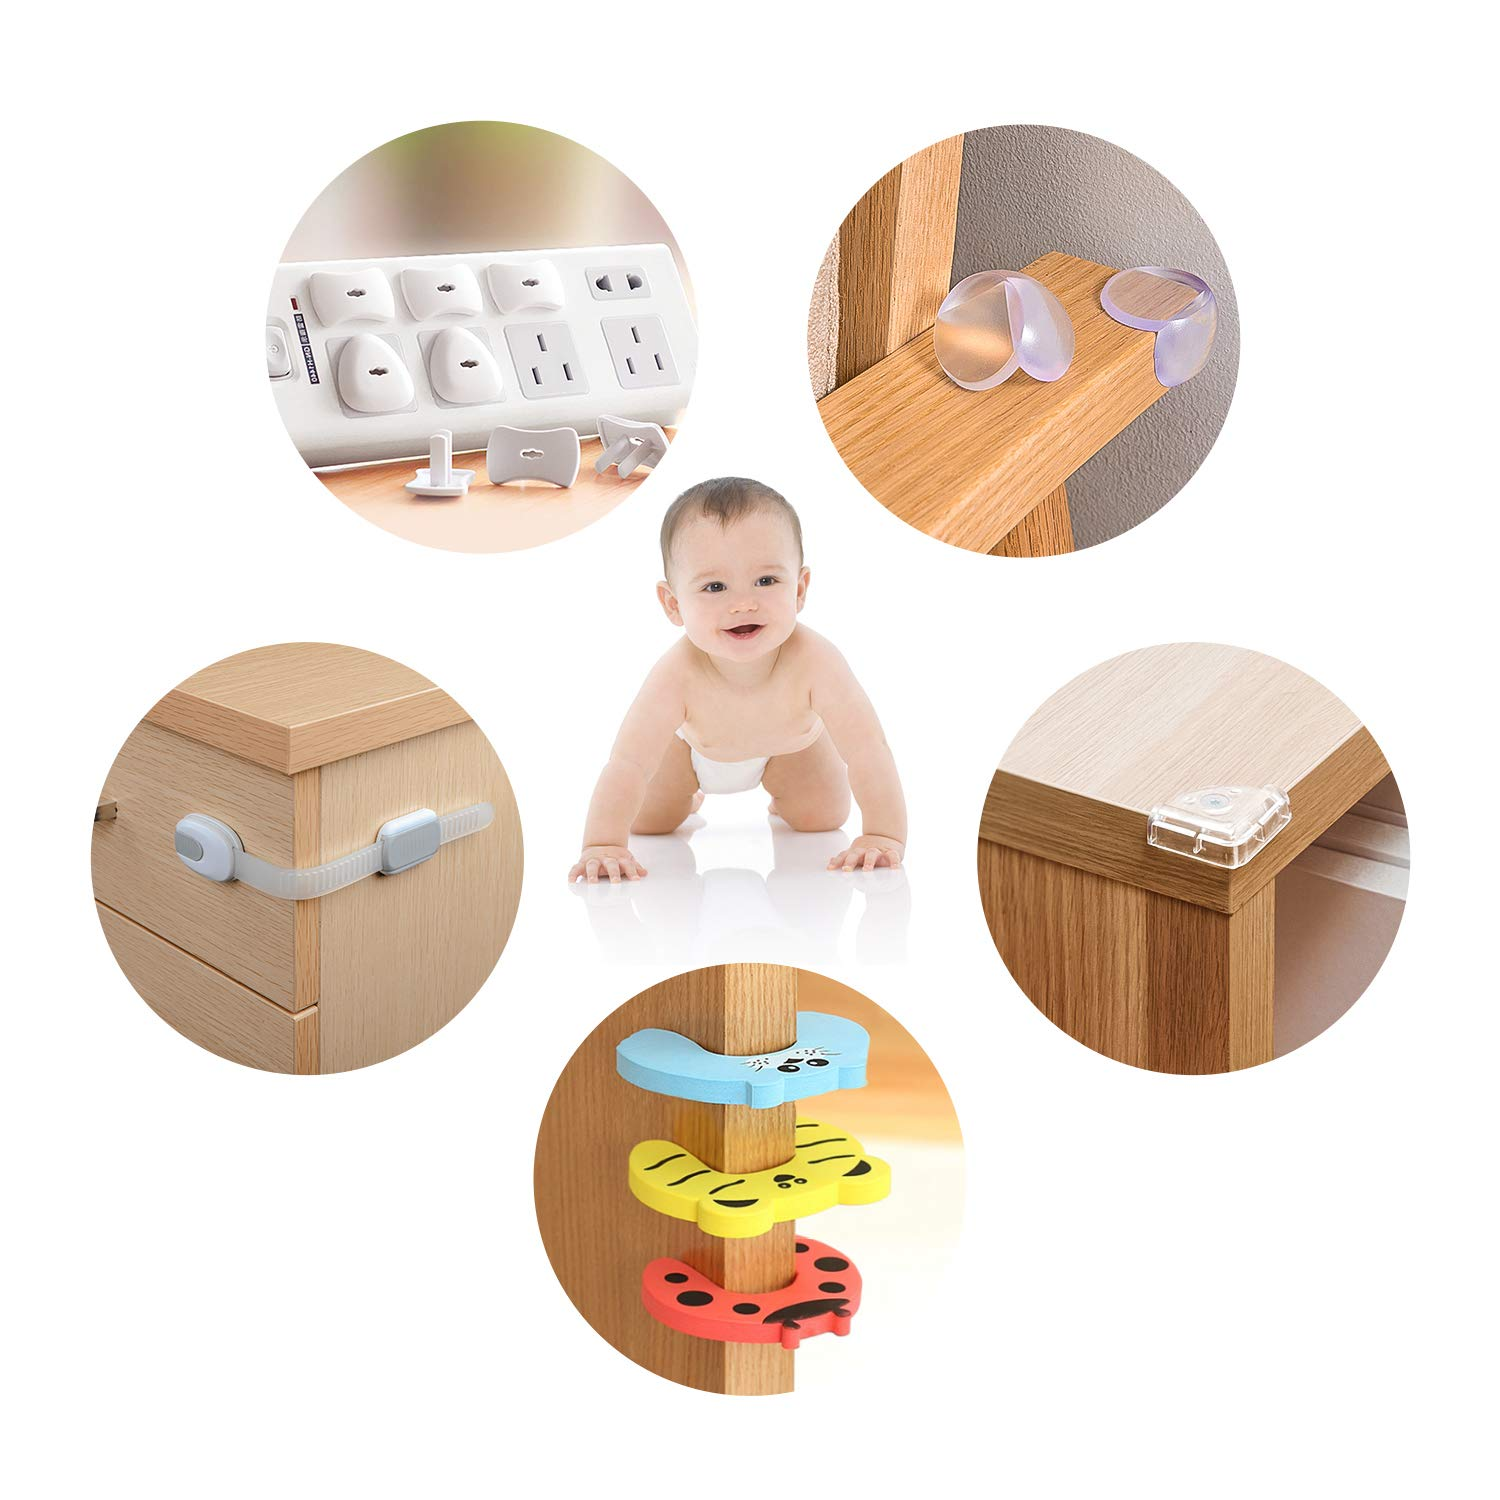 Fansteck Baby Proofing 48 Pack - 20 Corner Guards & 10 Cabinet Locks & 12 Outlet Covers + 3 Keys & 3 Baby Door Stopper - Chock Free Size and Nontoxic PVC Material for Child